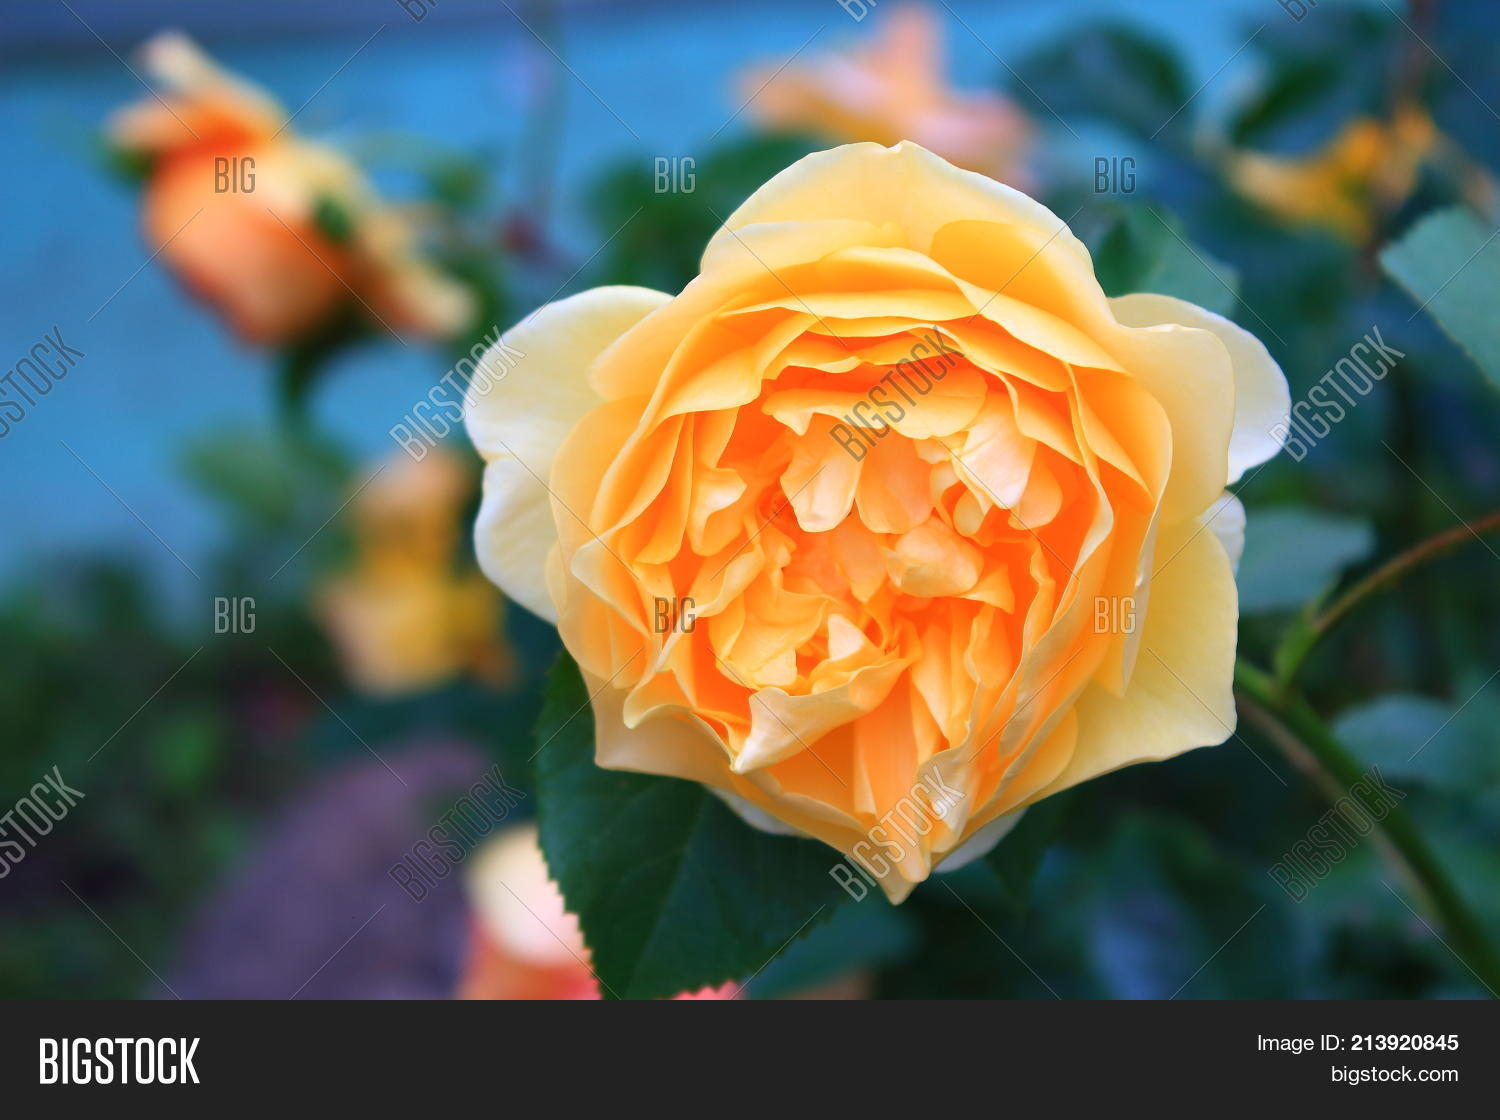 Beautiful Big Orange Rose On Blue Background Large The Bushes